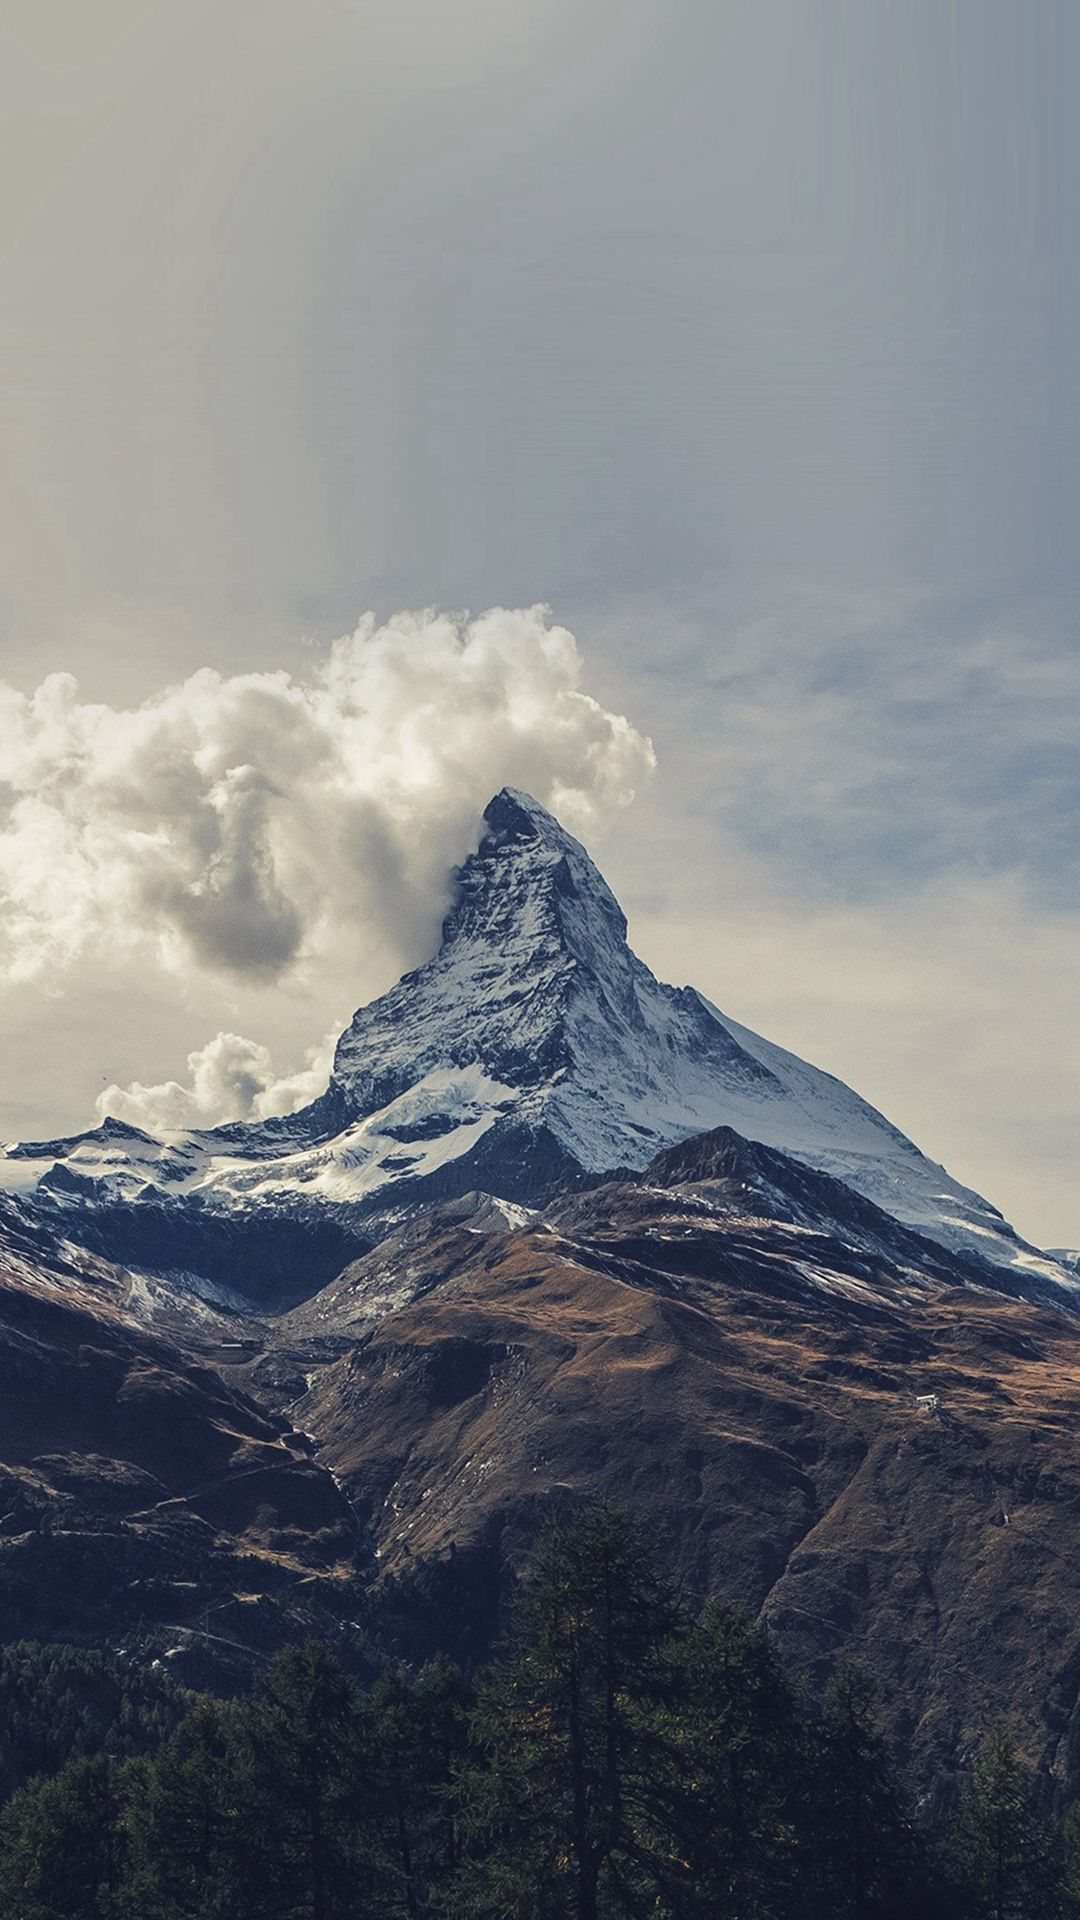 Hd mountain wallpaper iphone photography: Mountain Snow Sky Nature iPhone 6 Wallpaper Download ...